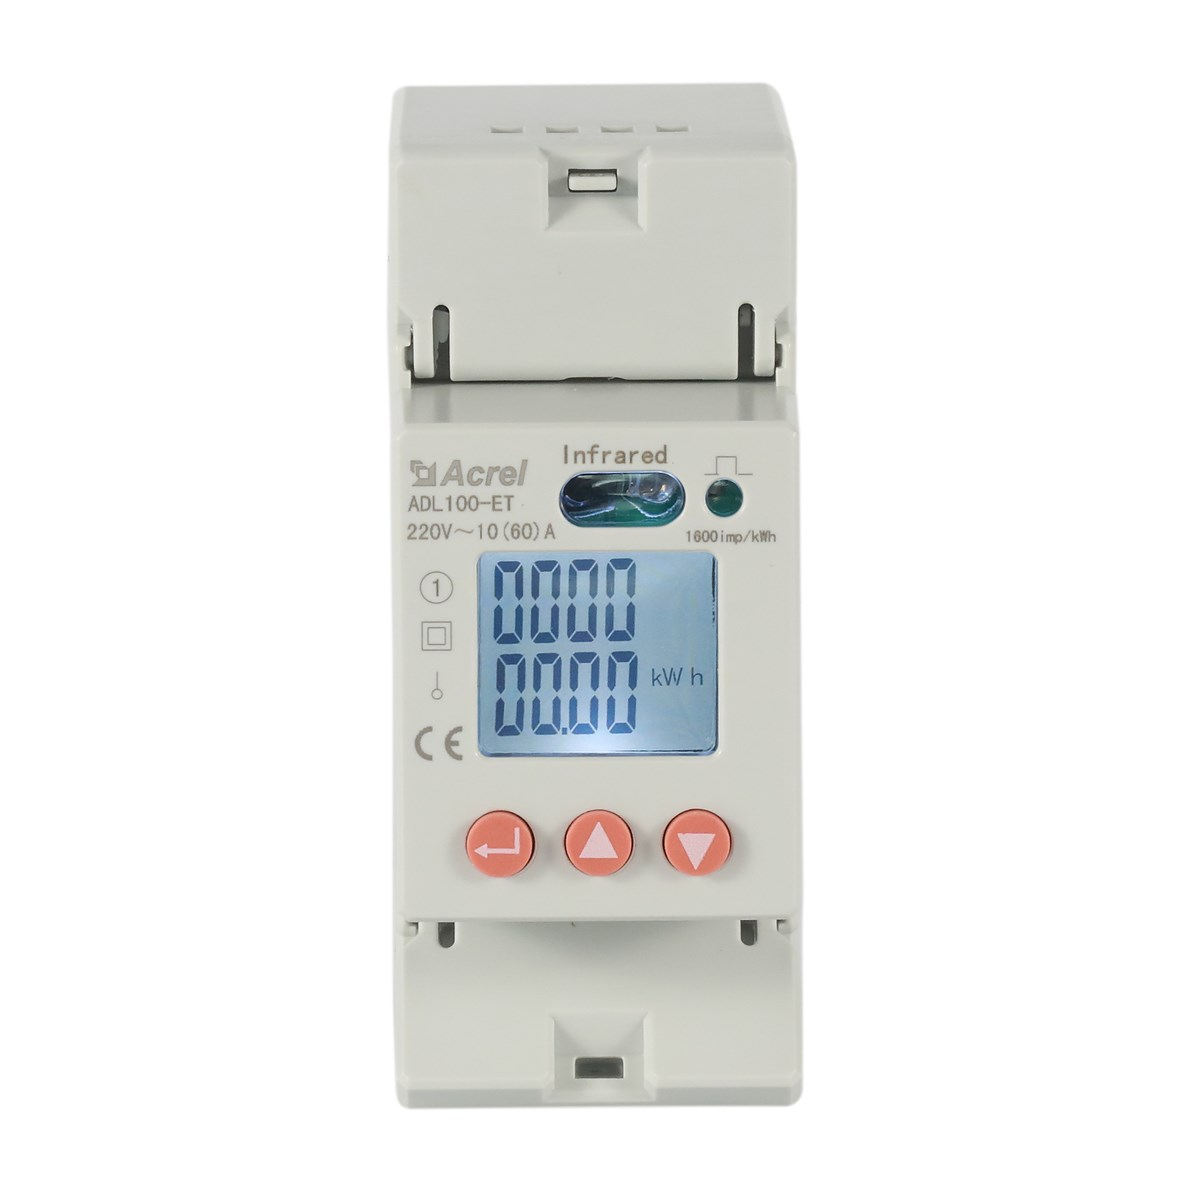 Acrel 300286. SZ ADL100-ET/C Single Phase DIN Rail Energy Meter Rs485 Modbus Rtu